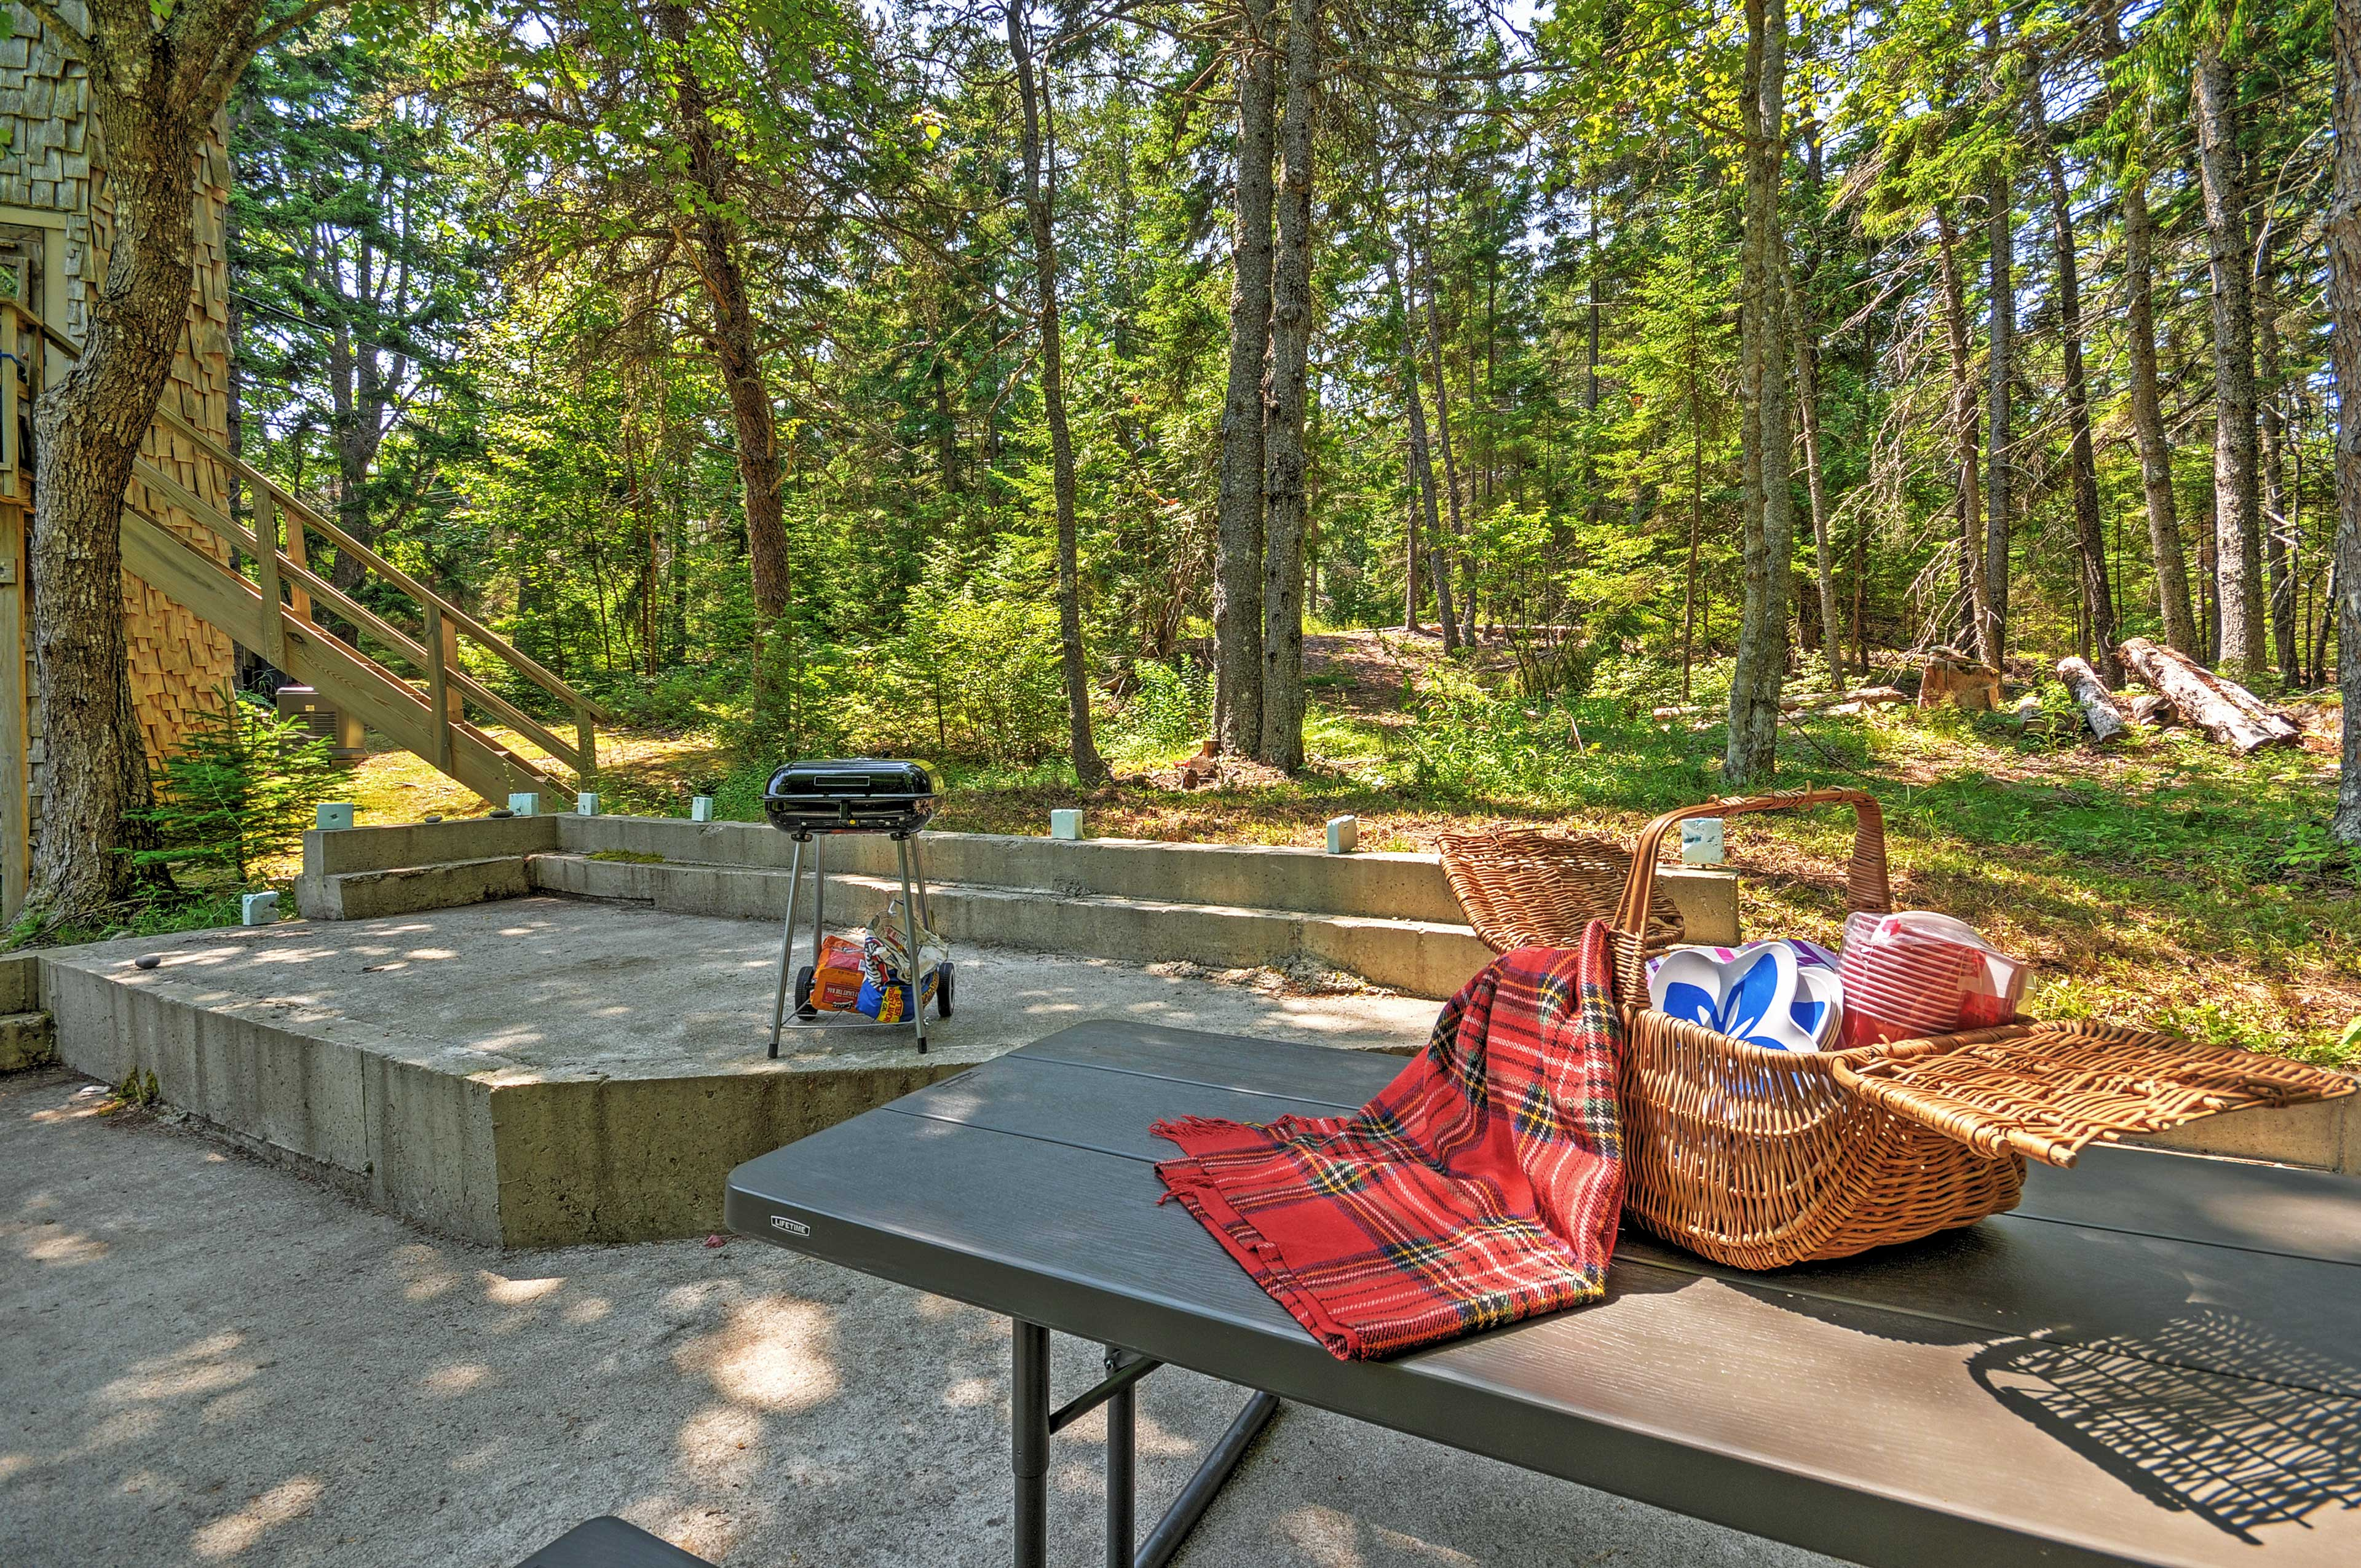 Patio | Charcoal Grill | Picnic Table